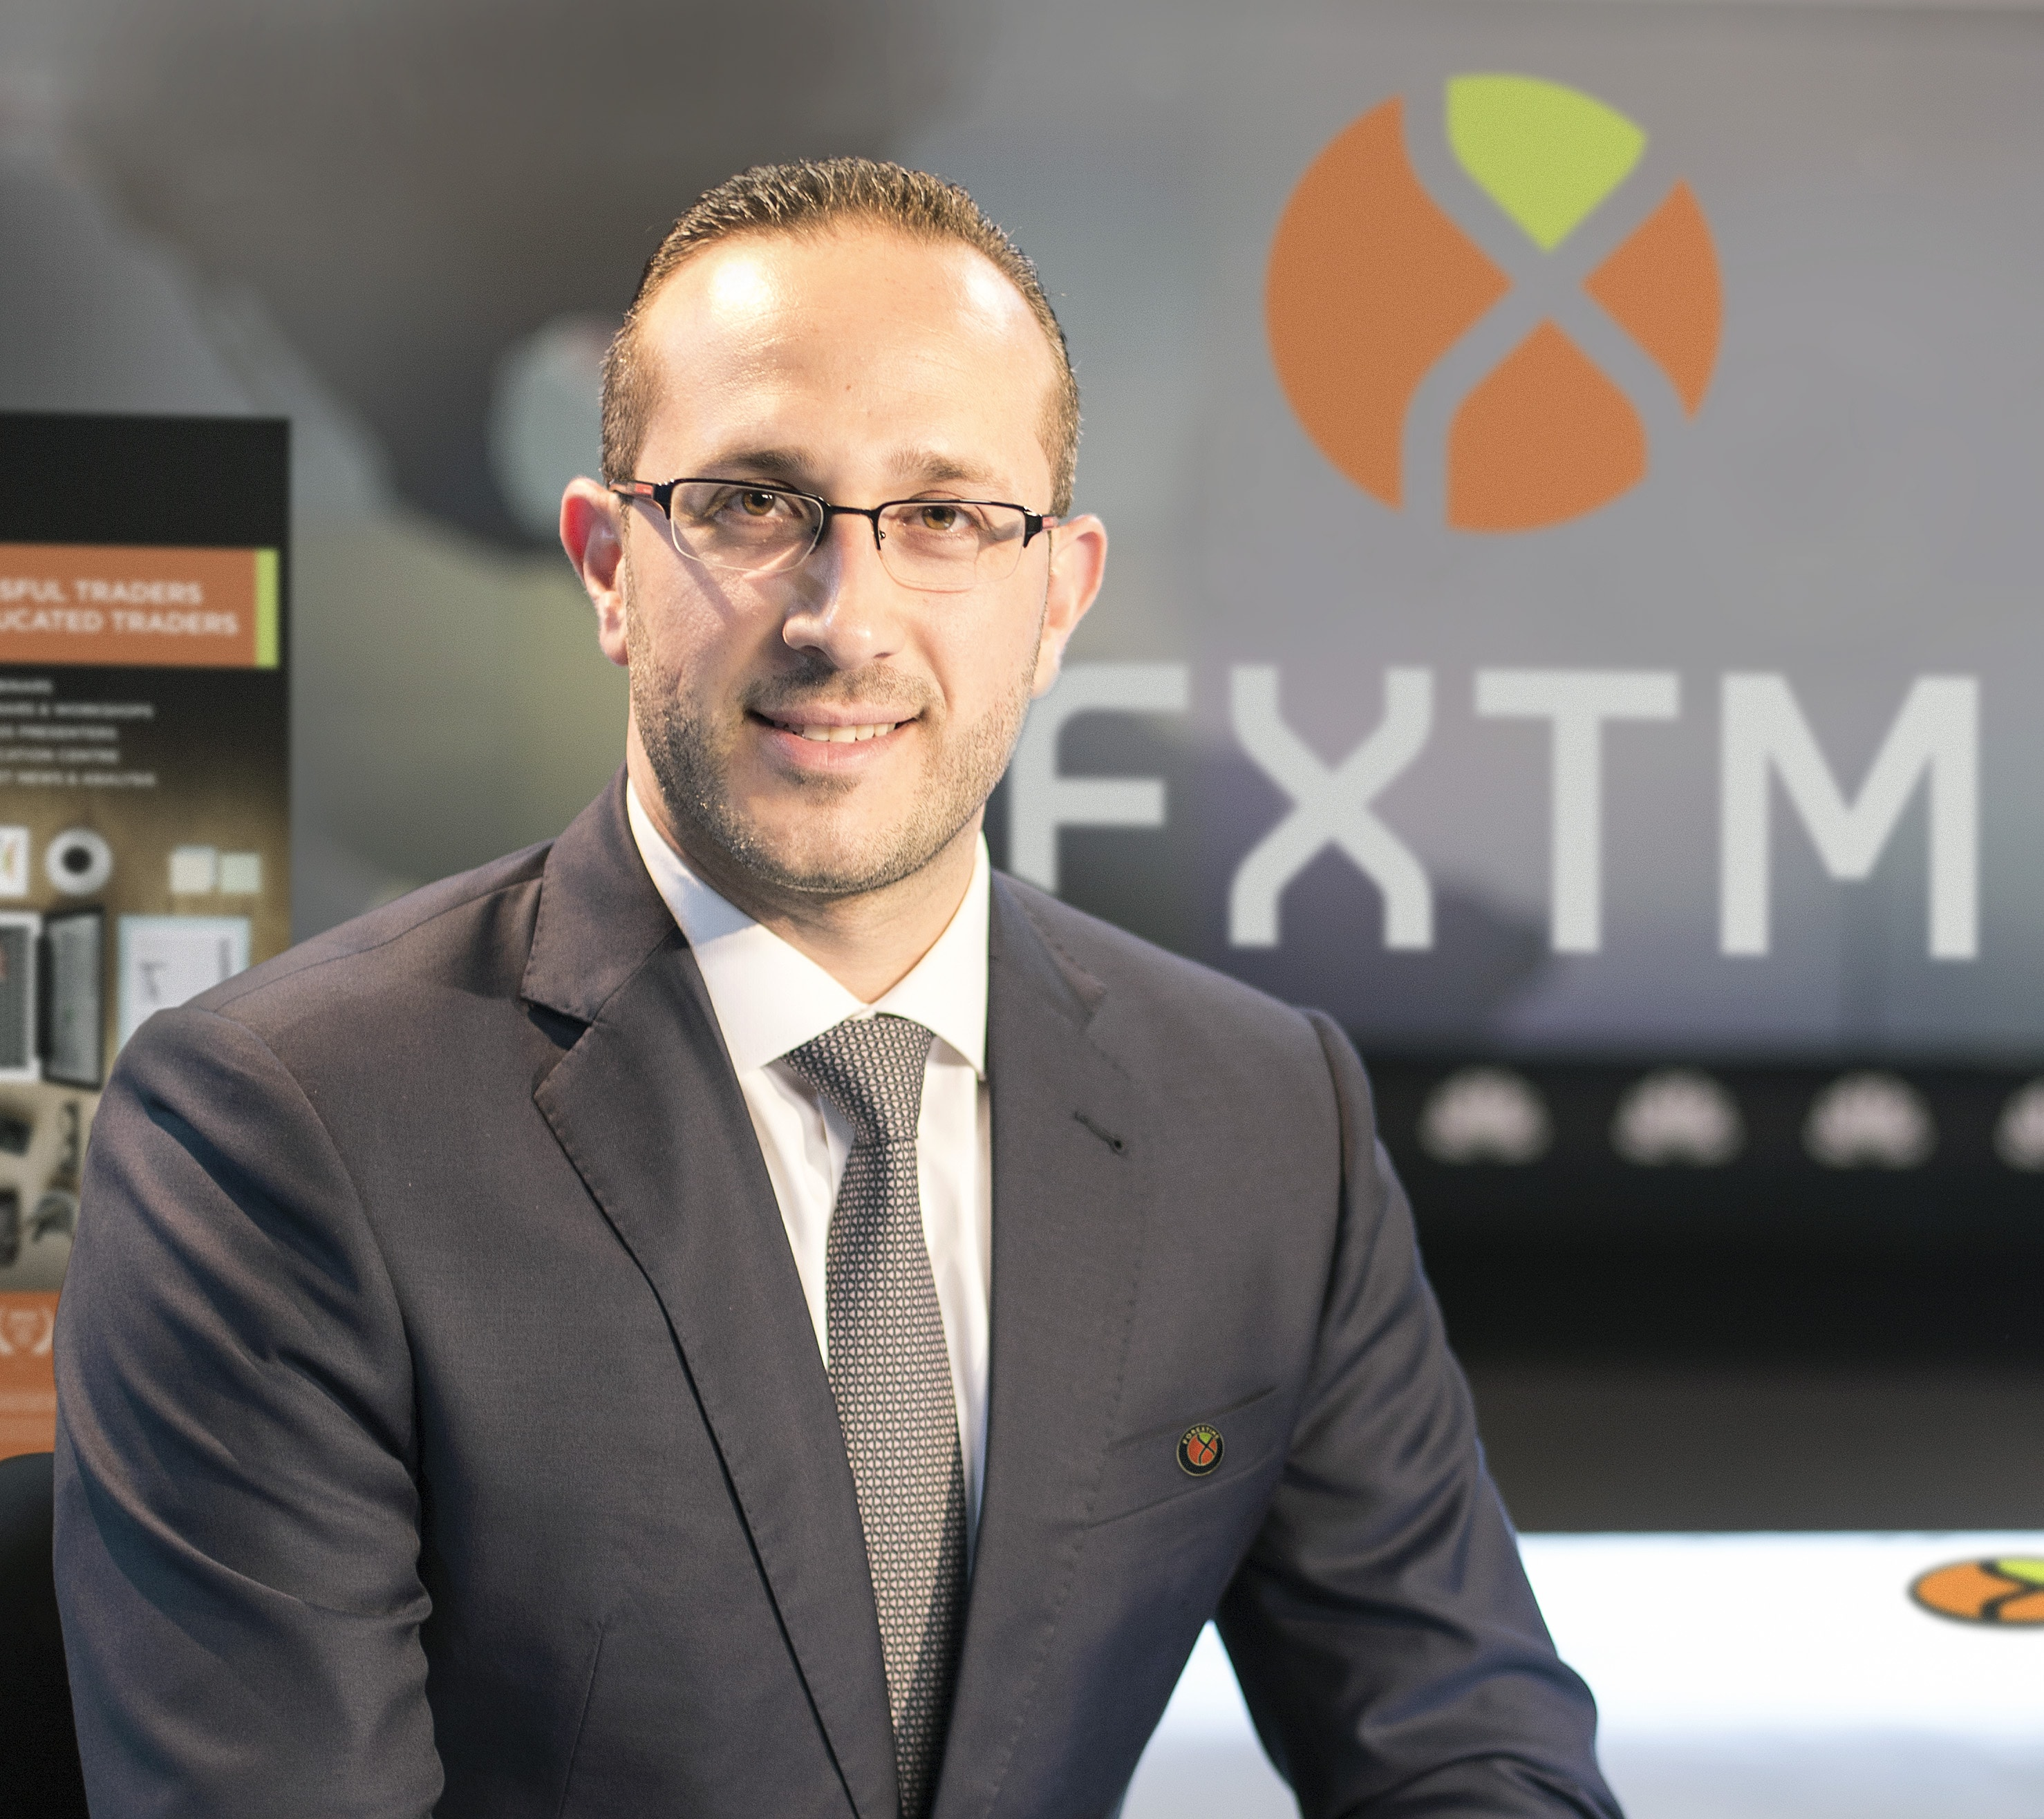 CNBC Star & FXTM Strategist: Egypt Could Be FX Key Market in Middle East